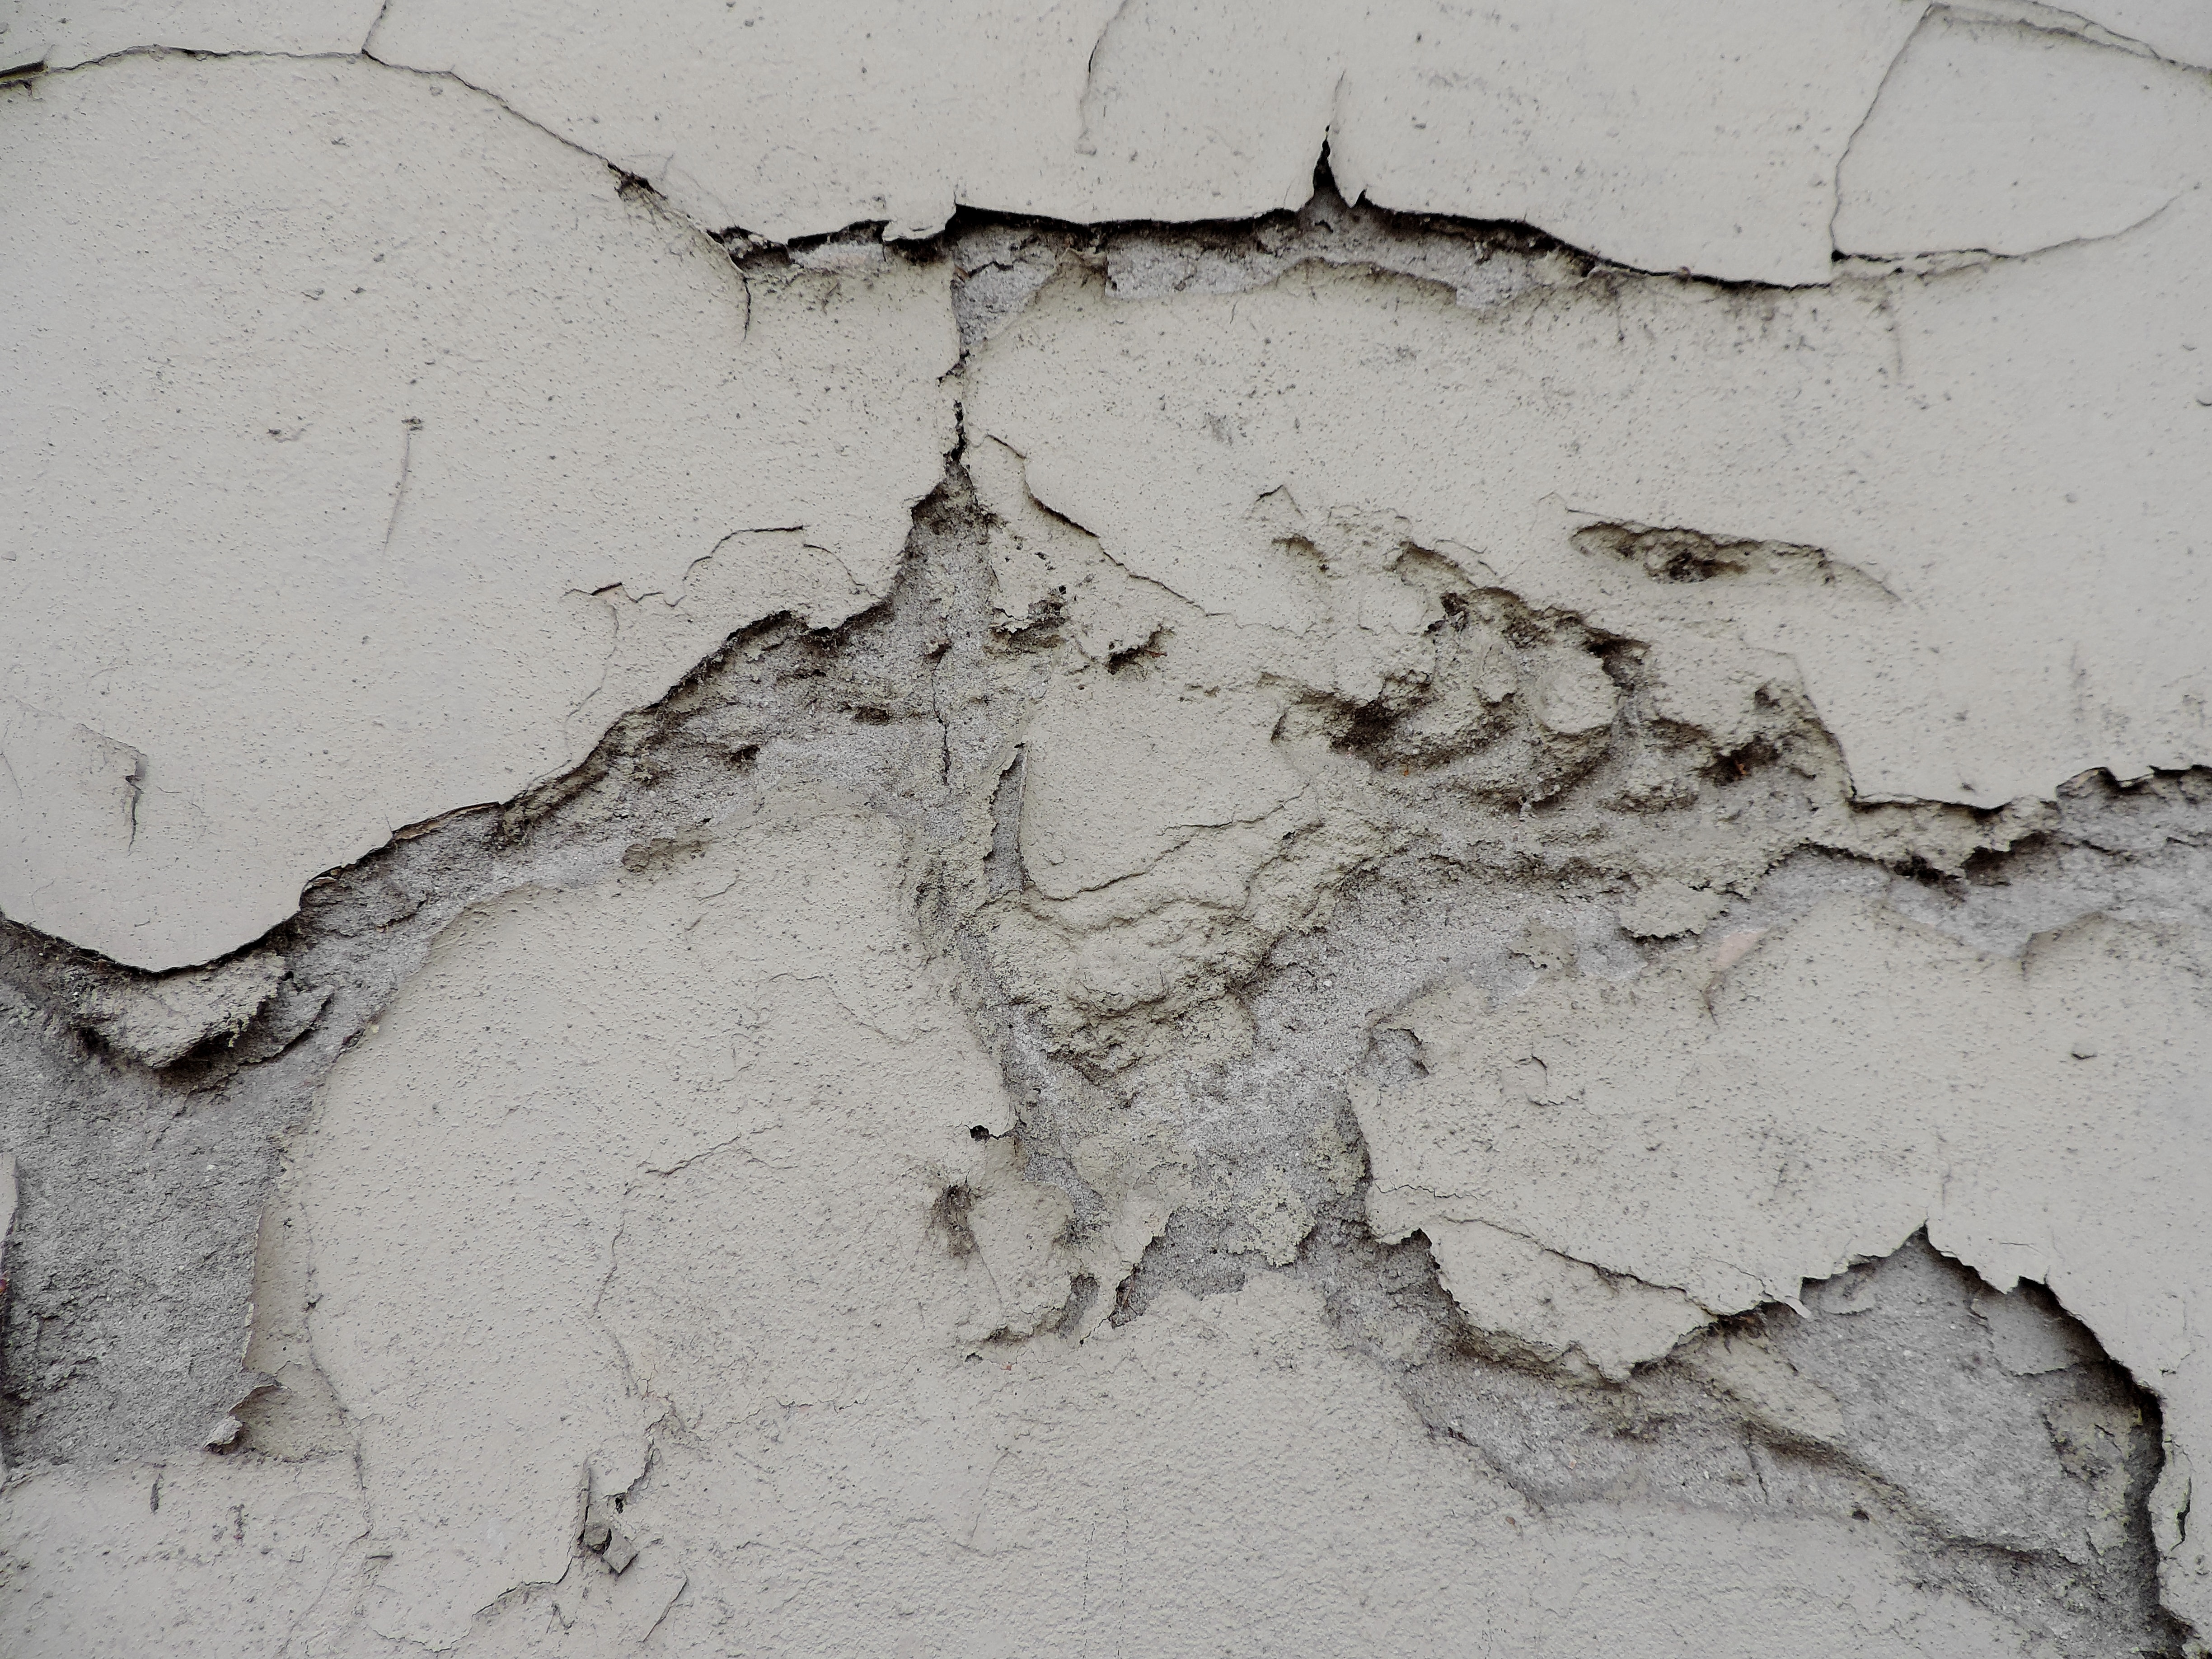 Free picture: surface, grunge, texture, dirty, cement